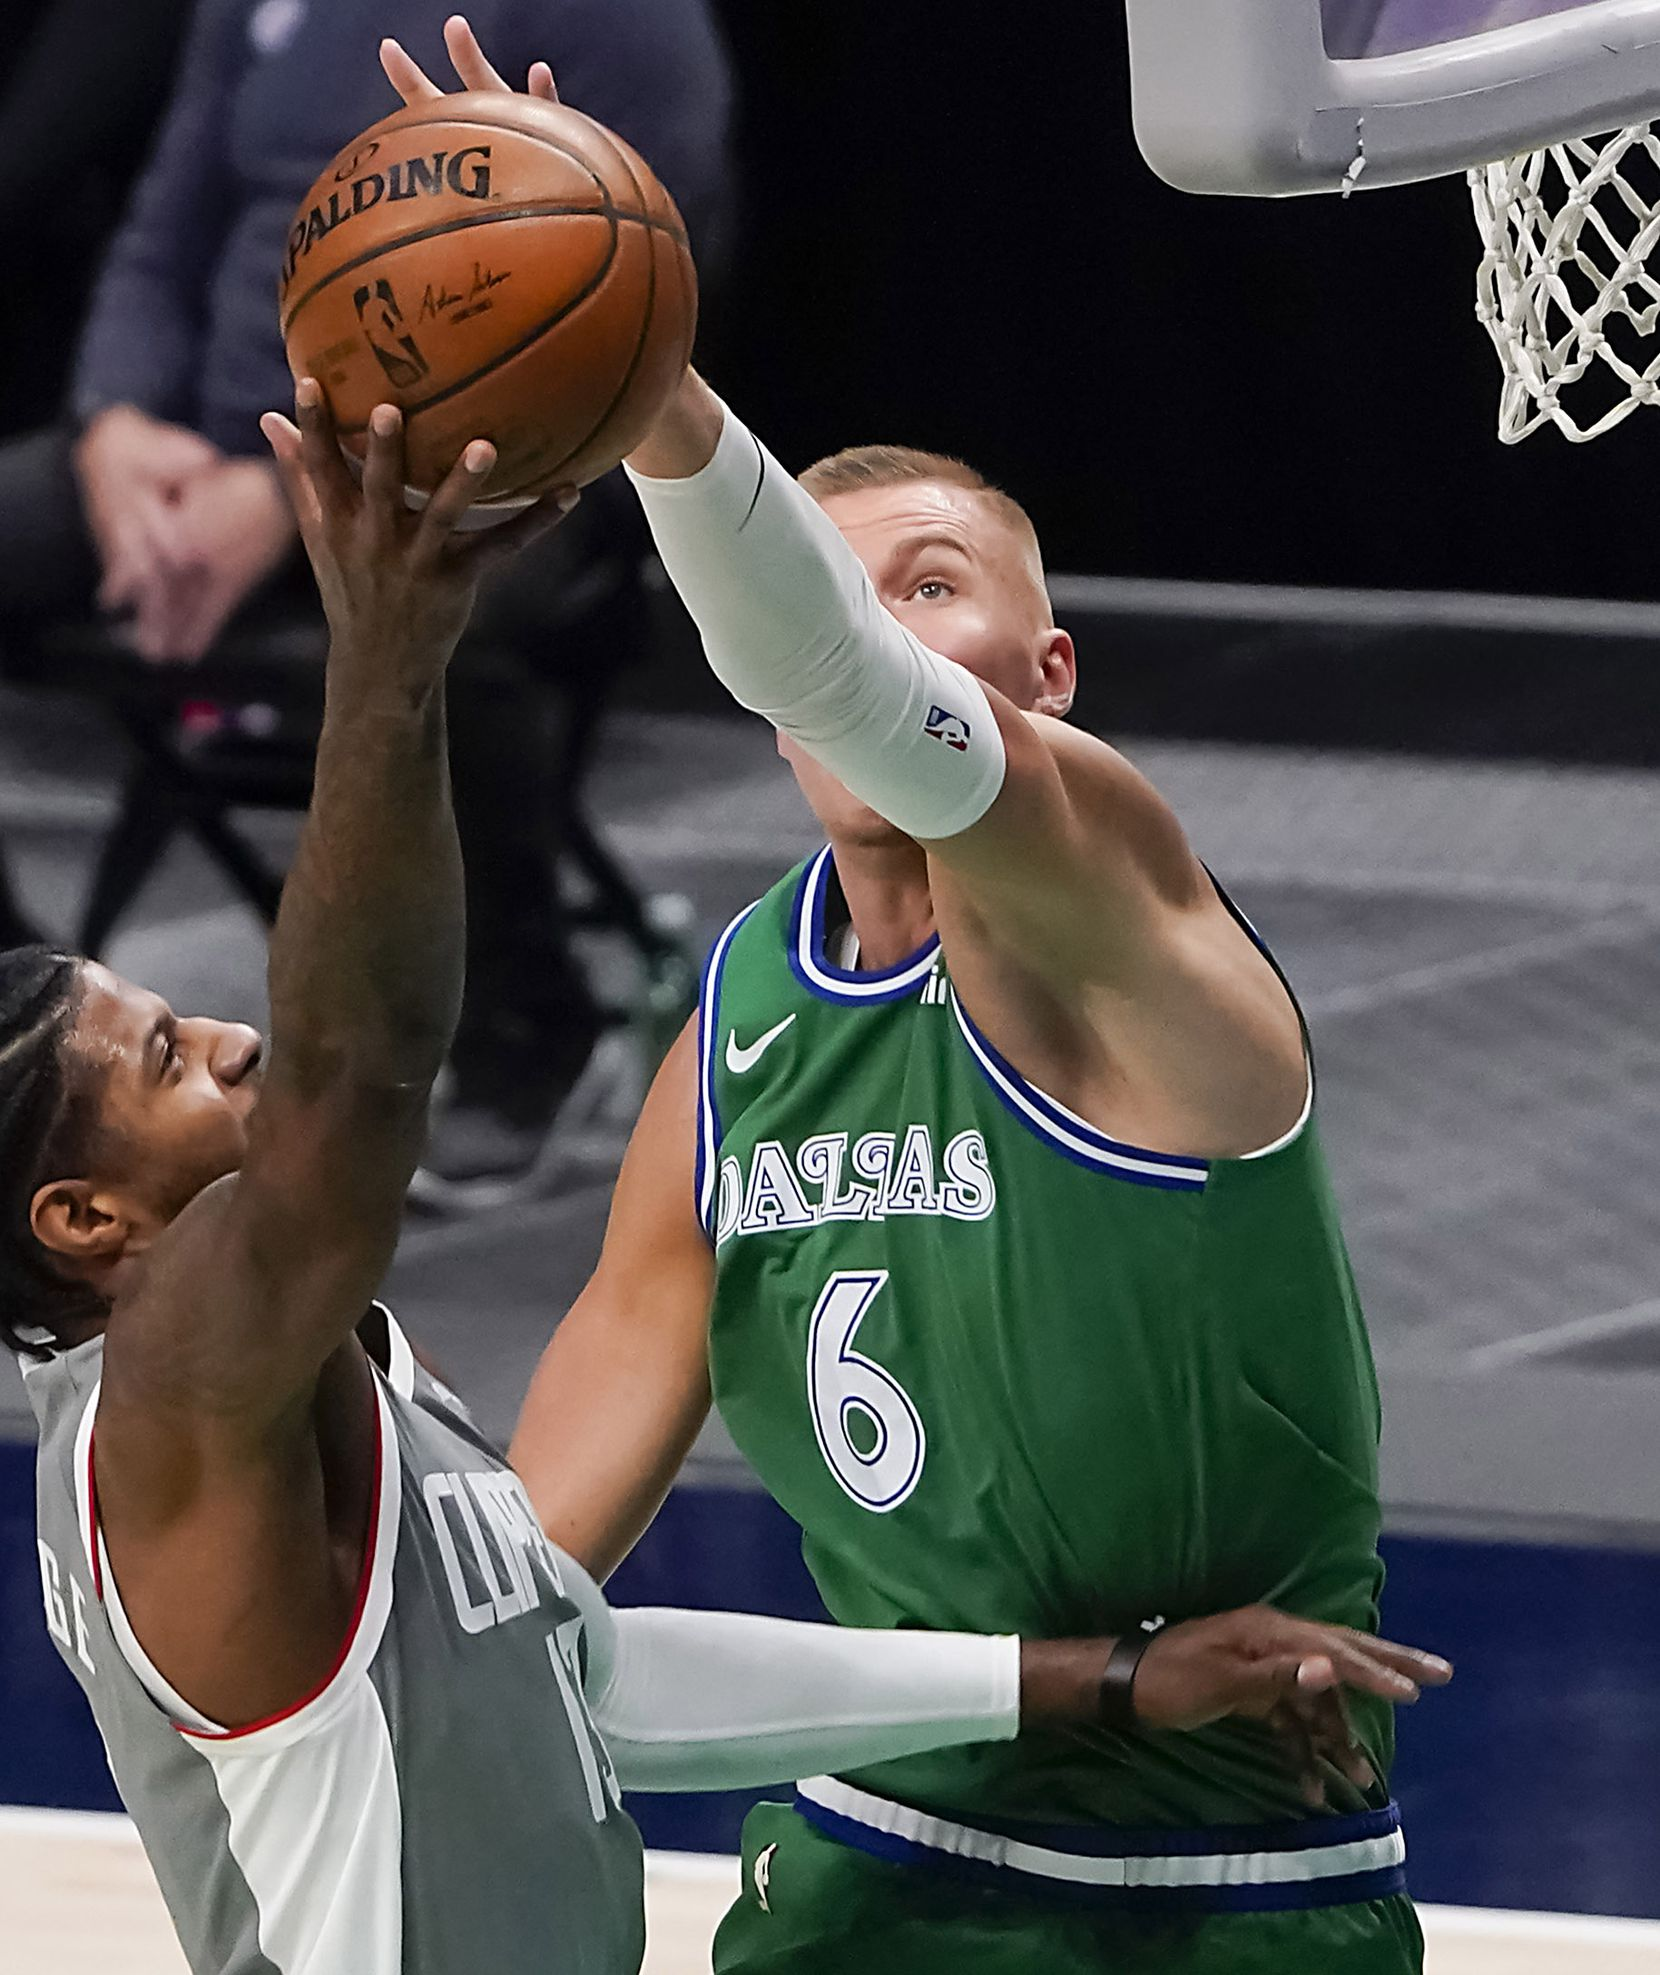 Dallas Mavericks center Kristaps Porzingis (6) defends against LA Clippers guard Paul George (13) during the first quarter of an NBA basketball game at American Airlines Center on Wednesday, March 17, 2021, in Dallas.